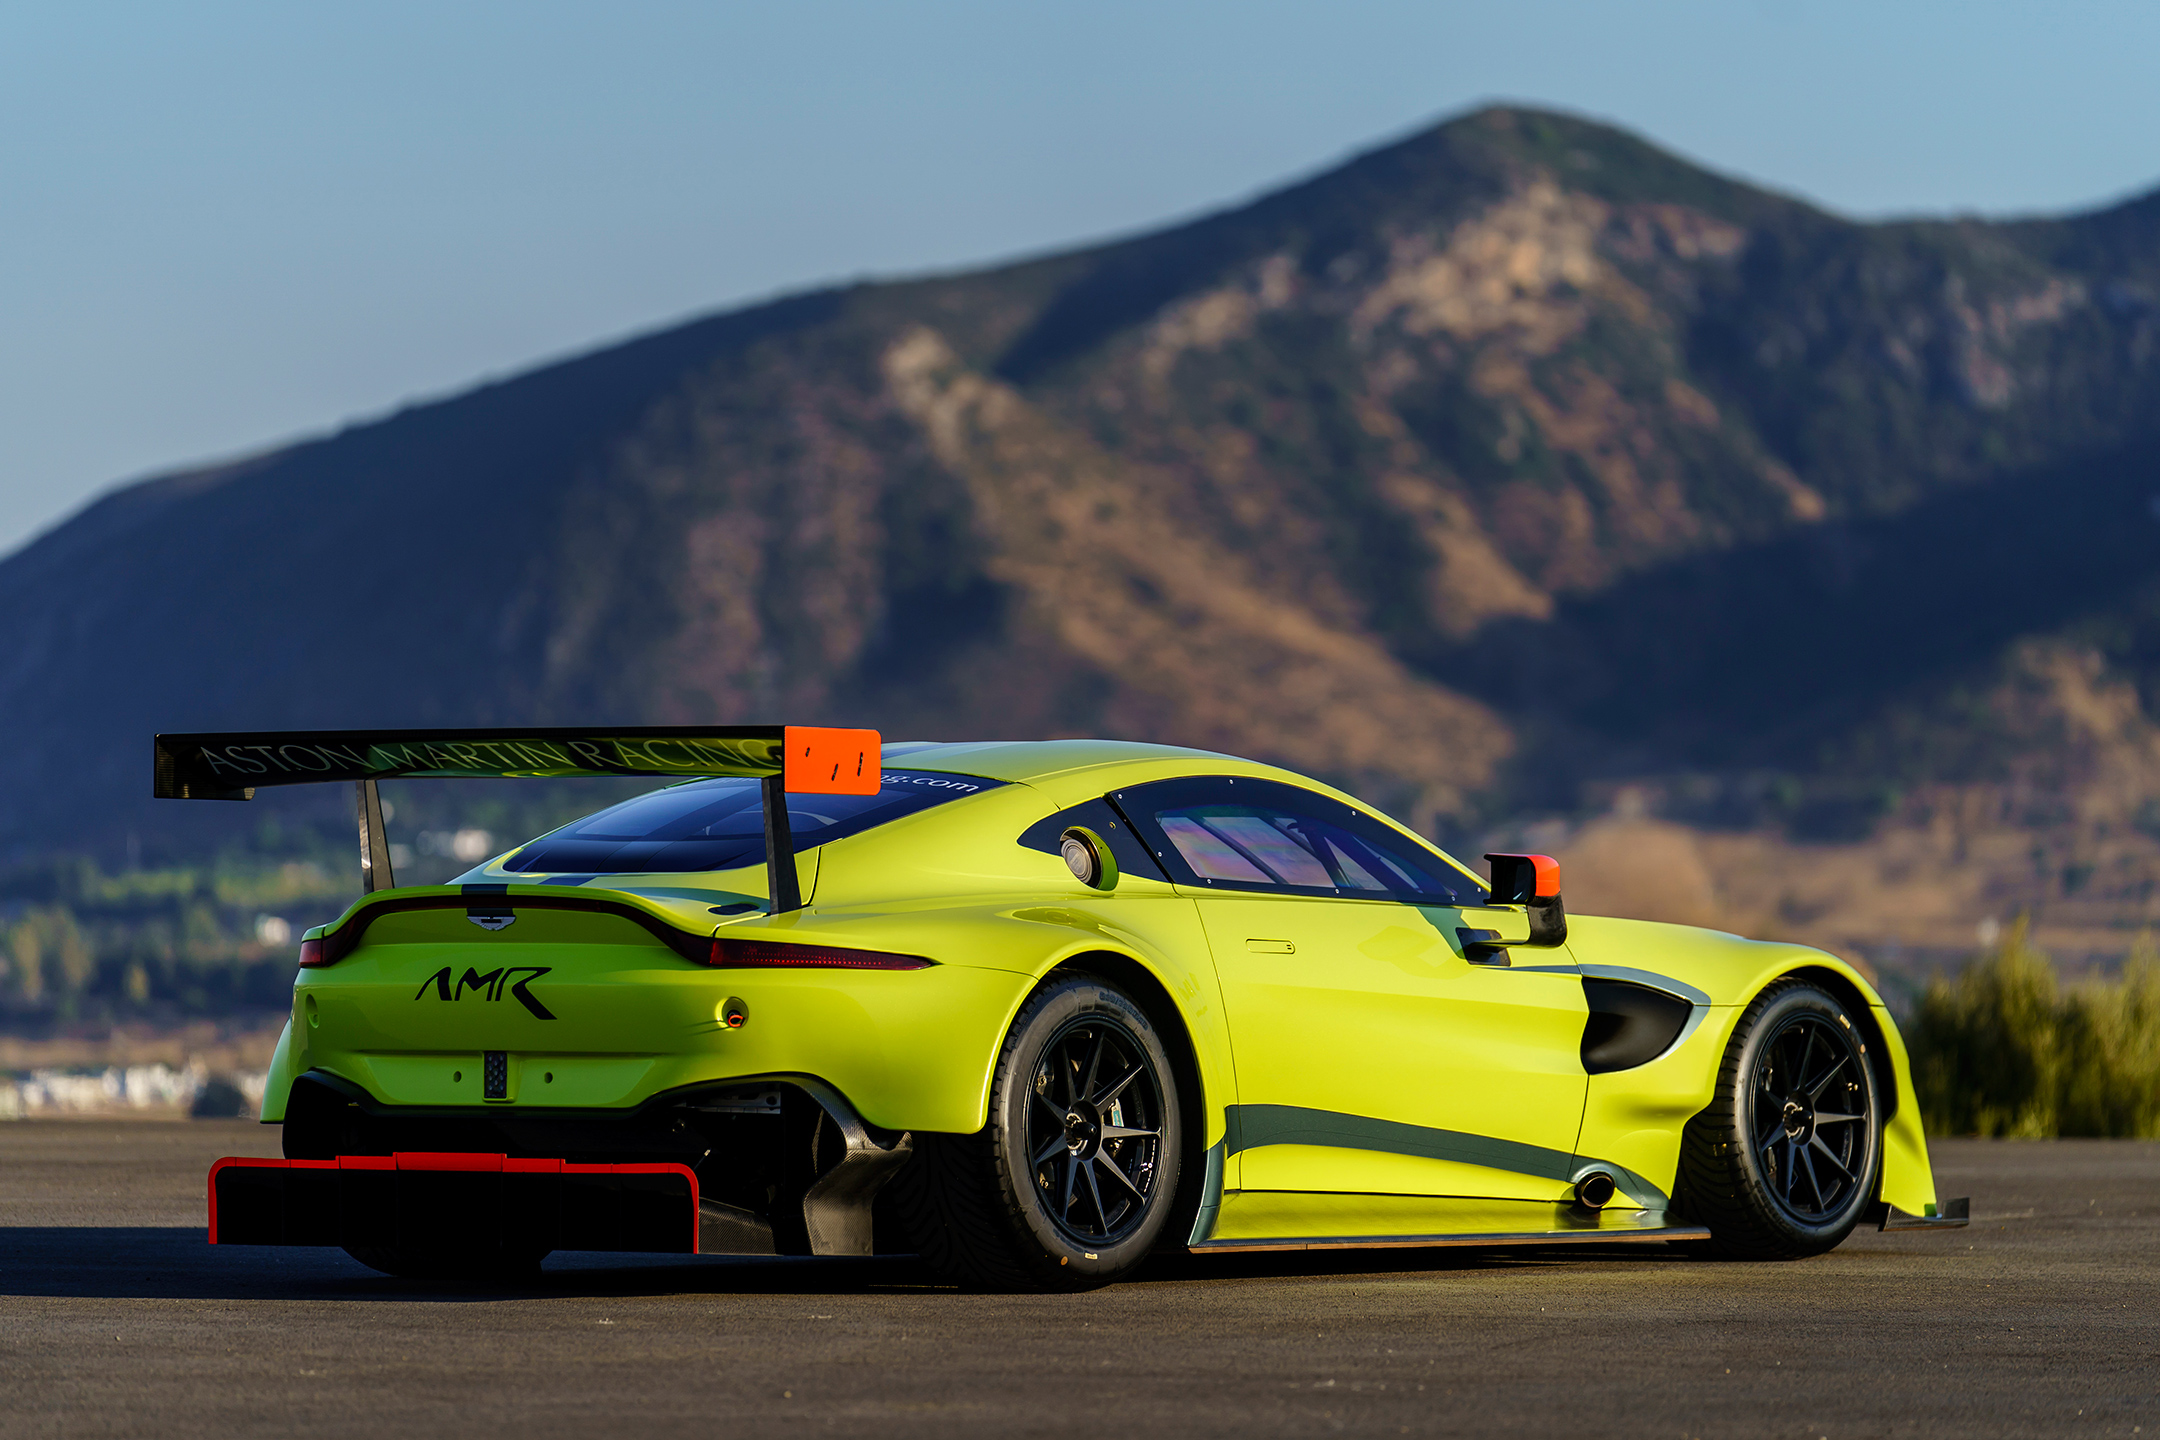 Aston Martin Racing Vantage GTE - 2018 - rear side-face / profil arrière